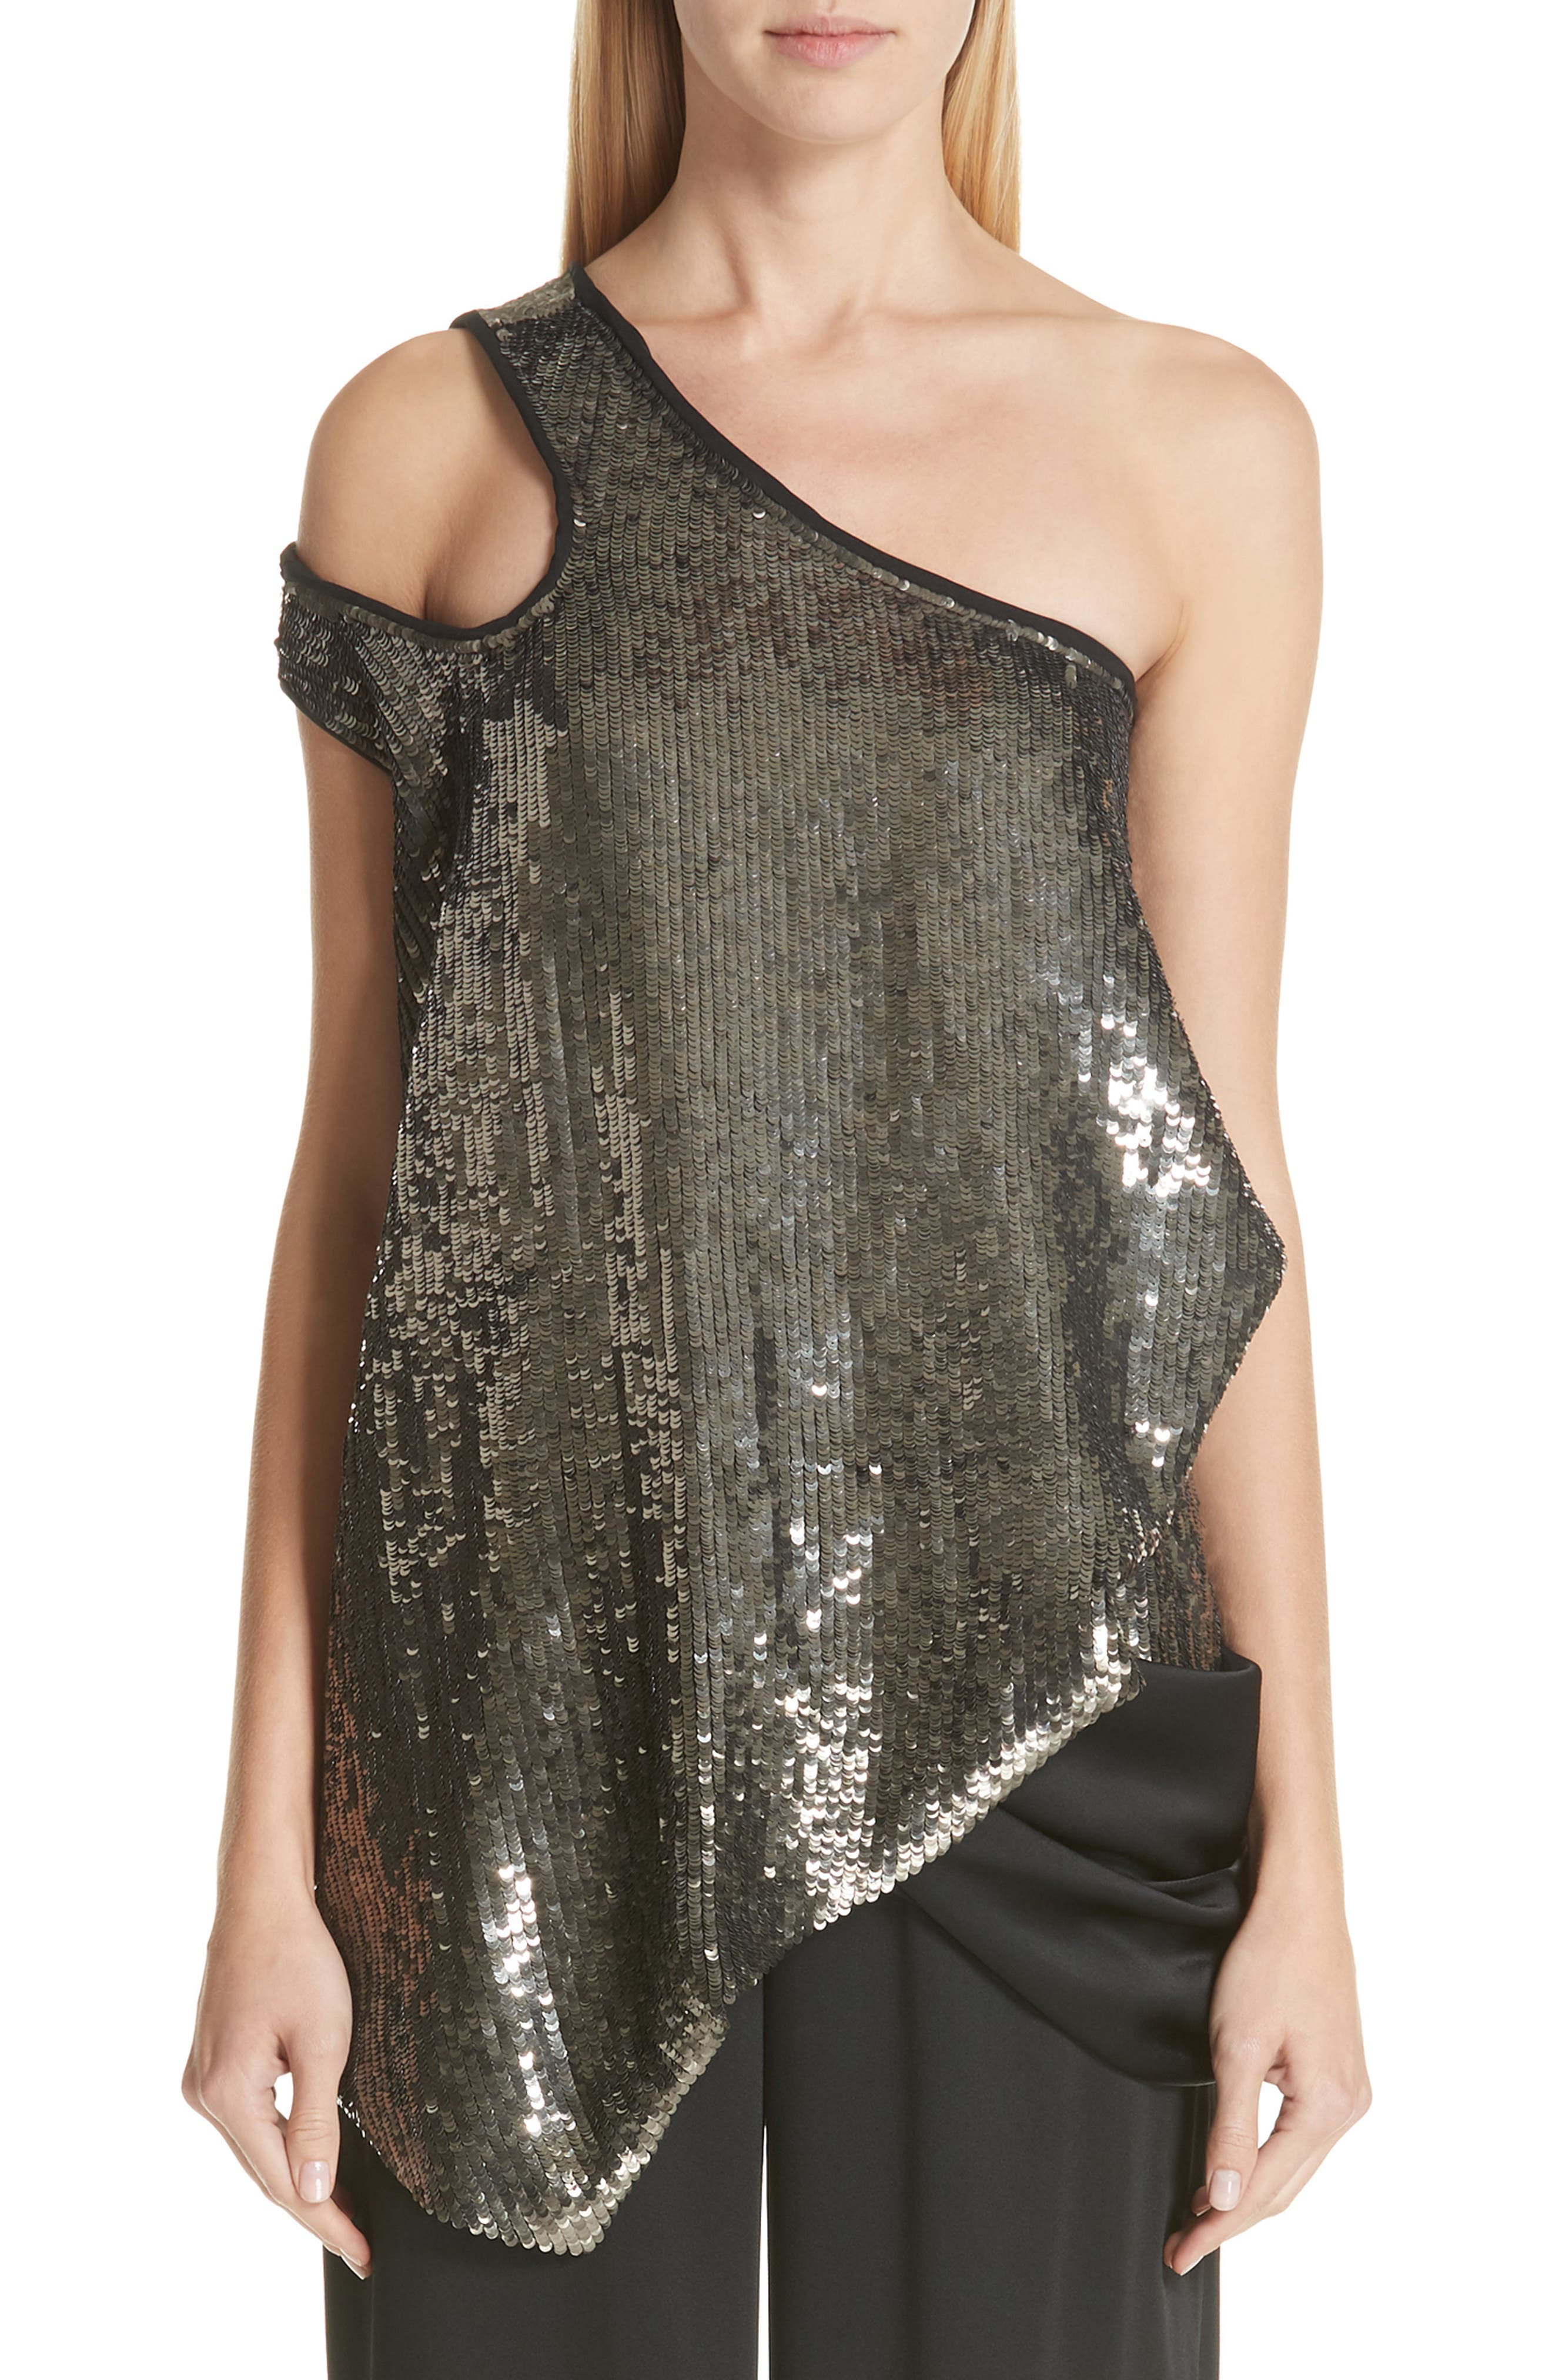 MONSE, Cutout Shoulder Sequin Tank, Main thumbnail 1, color, GUN METAL